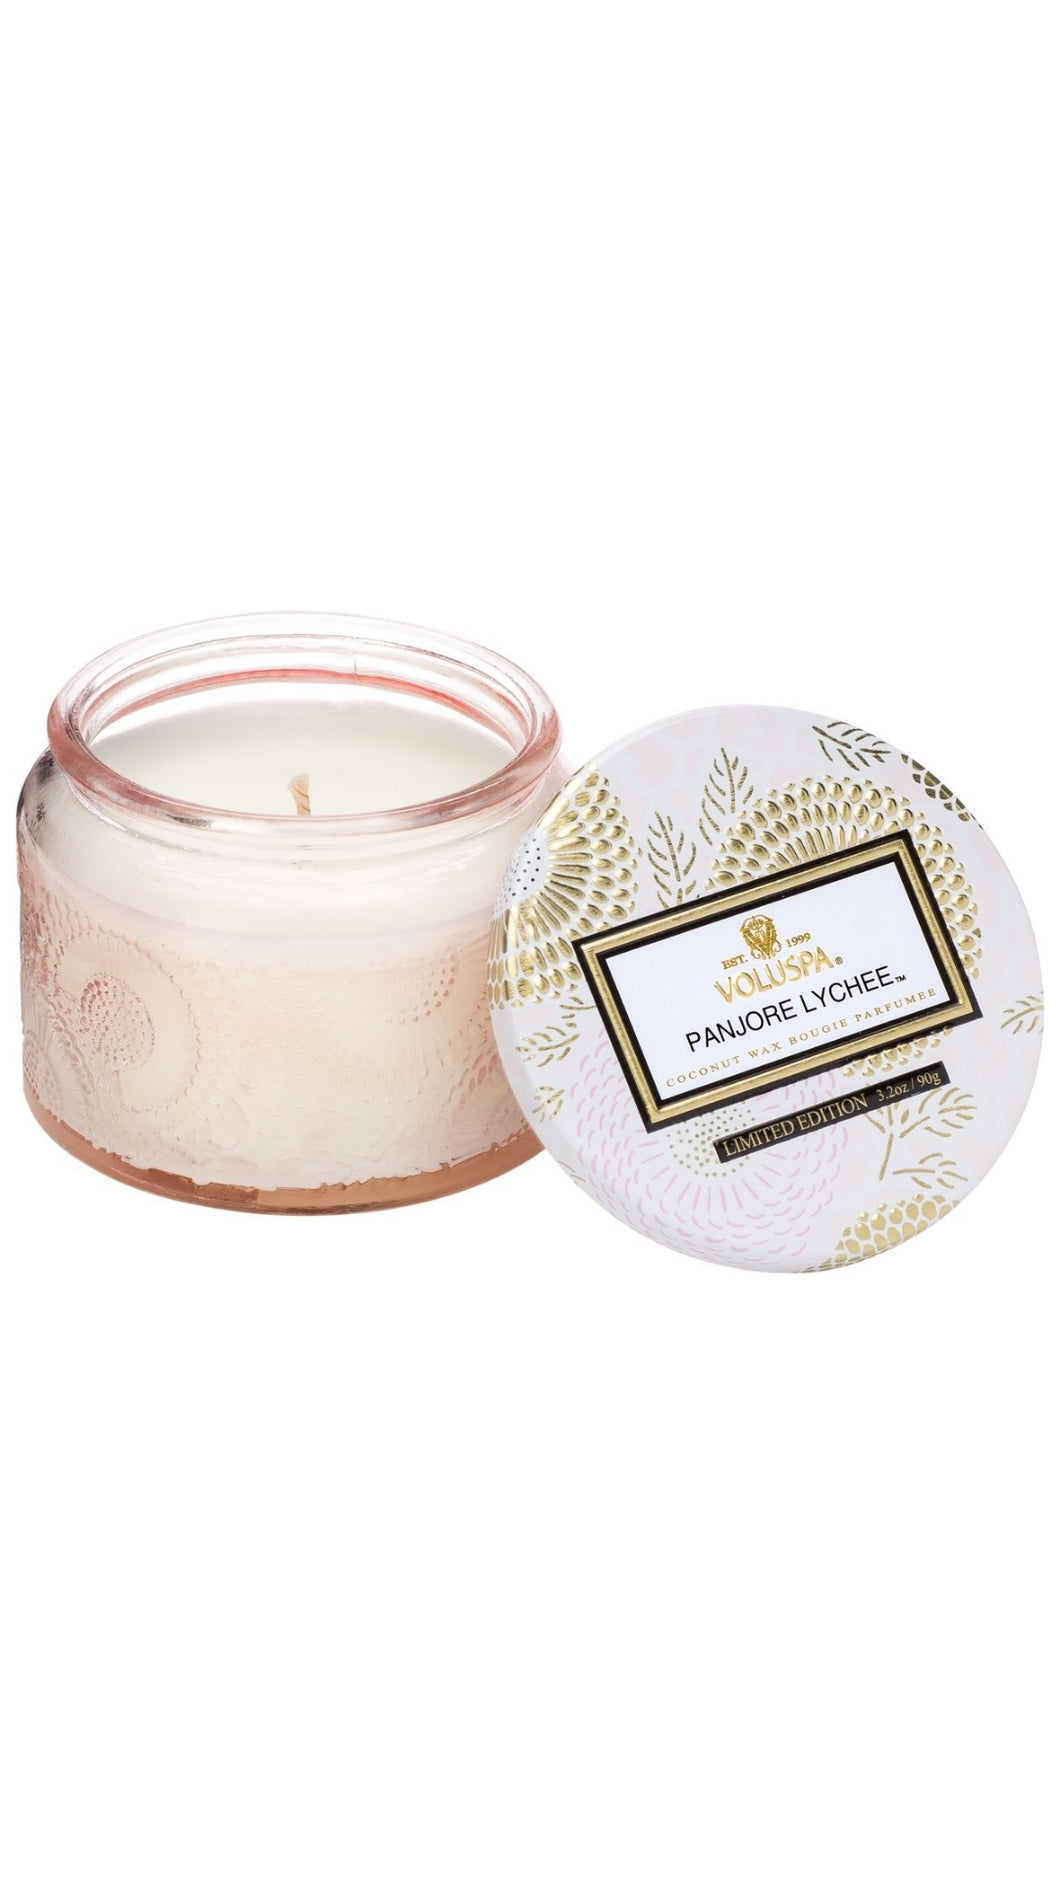 Panjore Lychee Candle 3.2oz